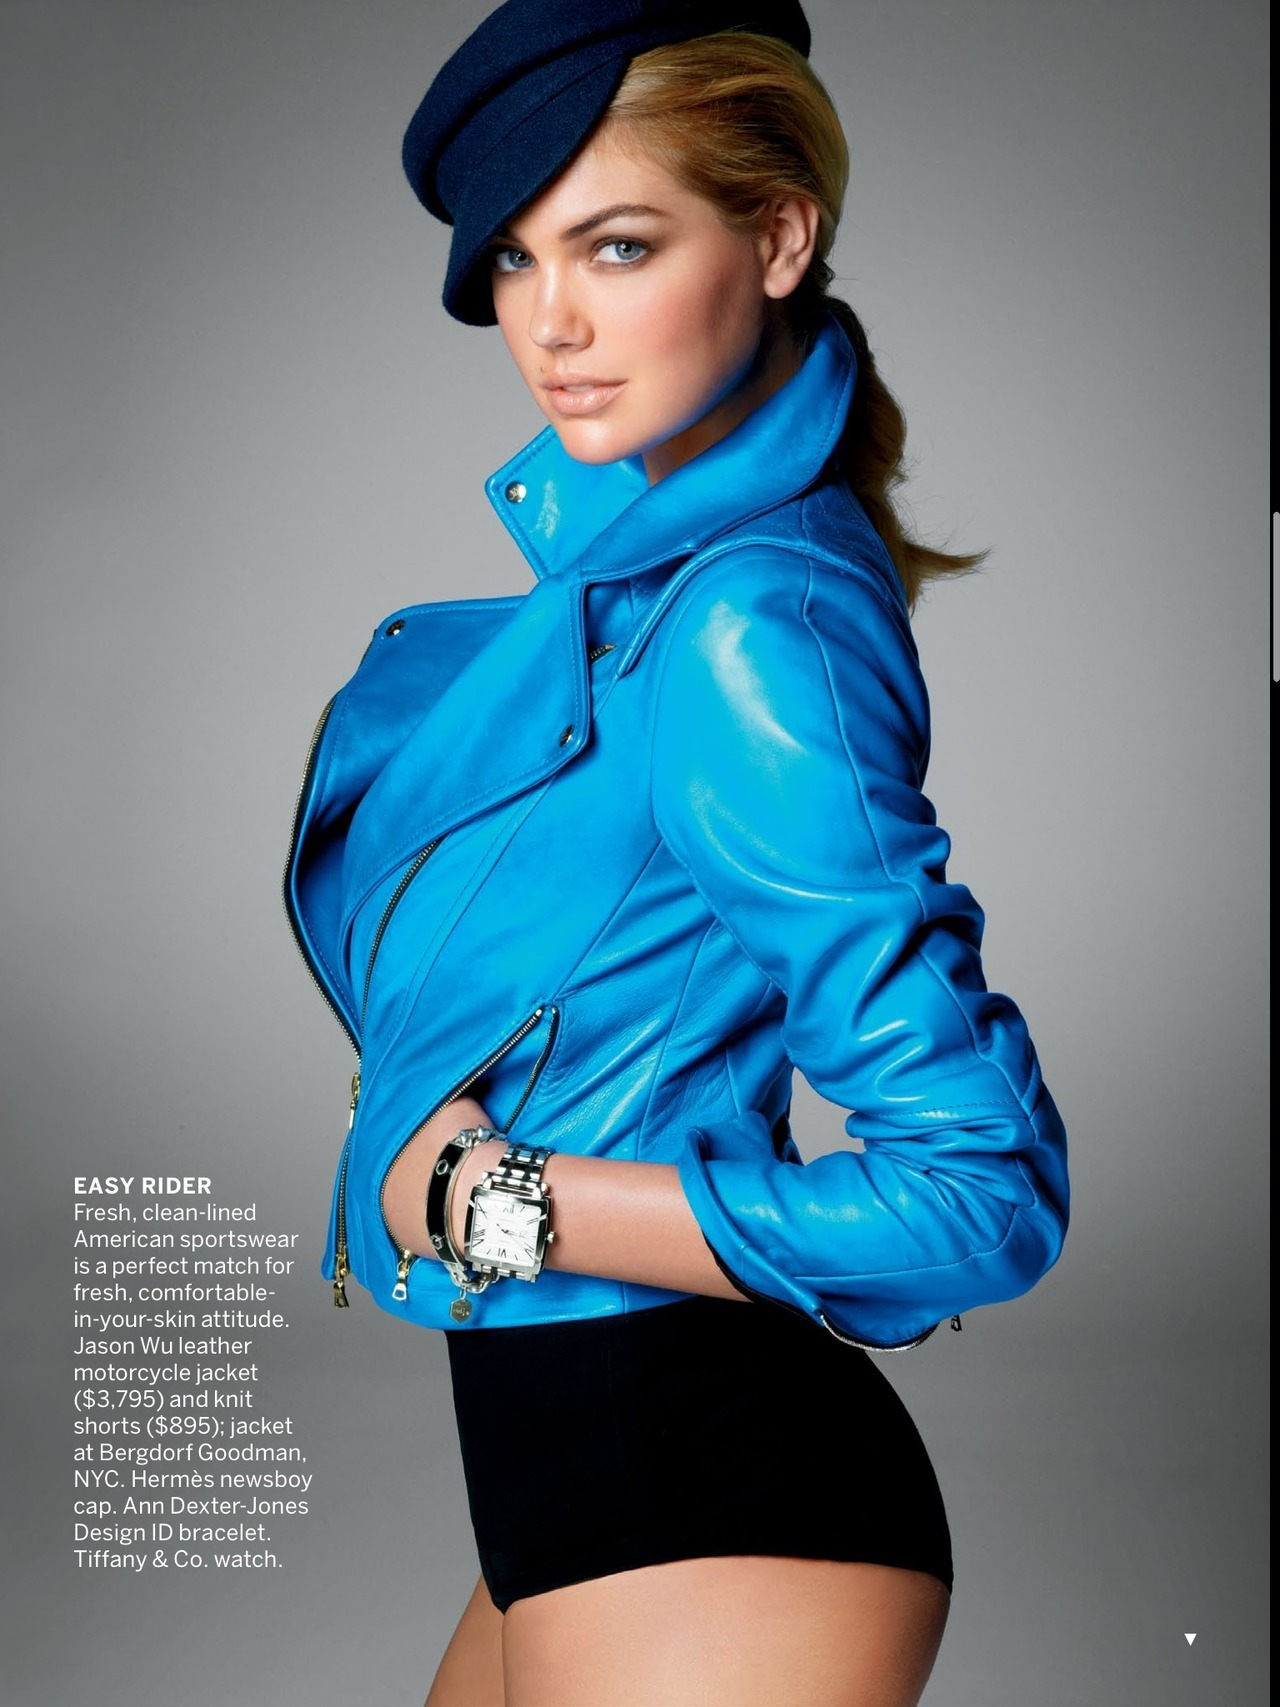 bohemea:  Kate Upton: The New Girl - Vogue by Steven Meisel, November 2012